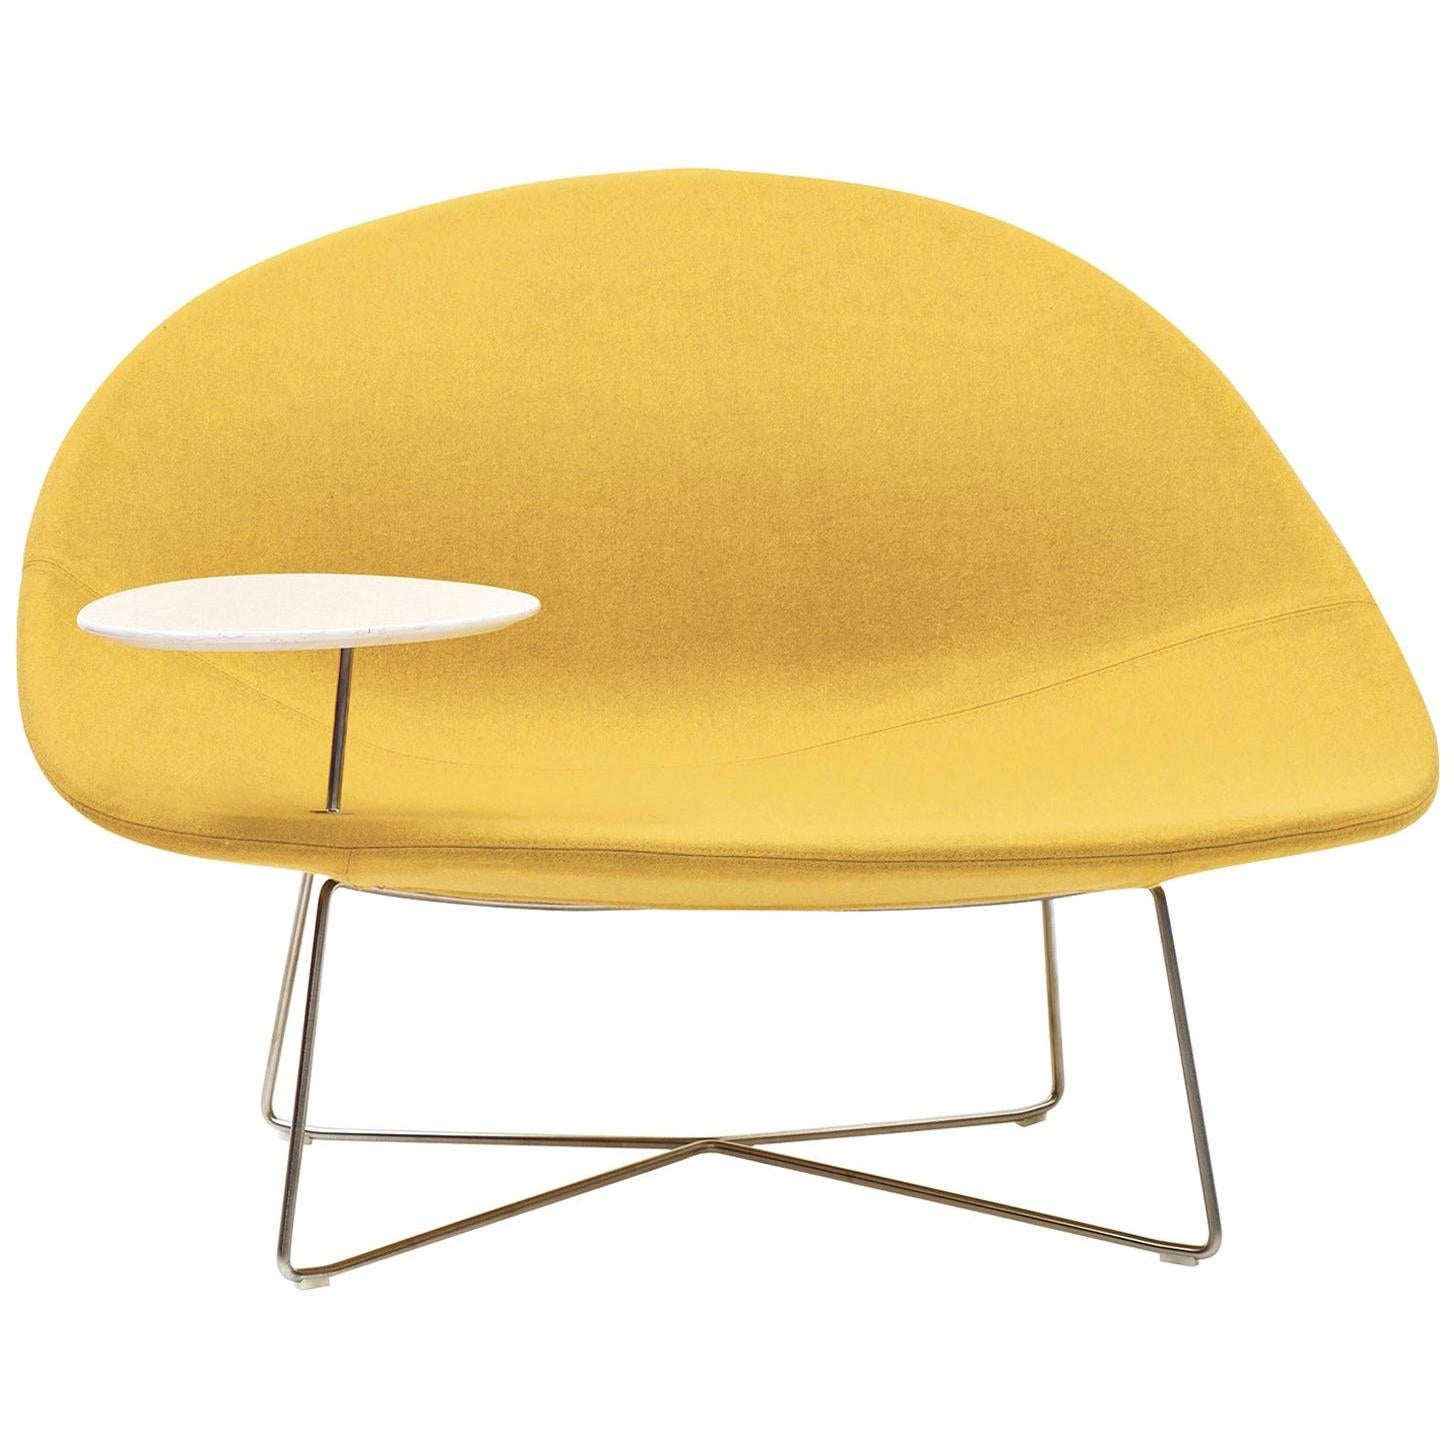 Isola Yellow Chair with Table by Claesson Koivisto Rune